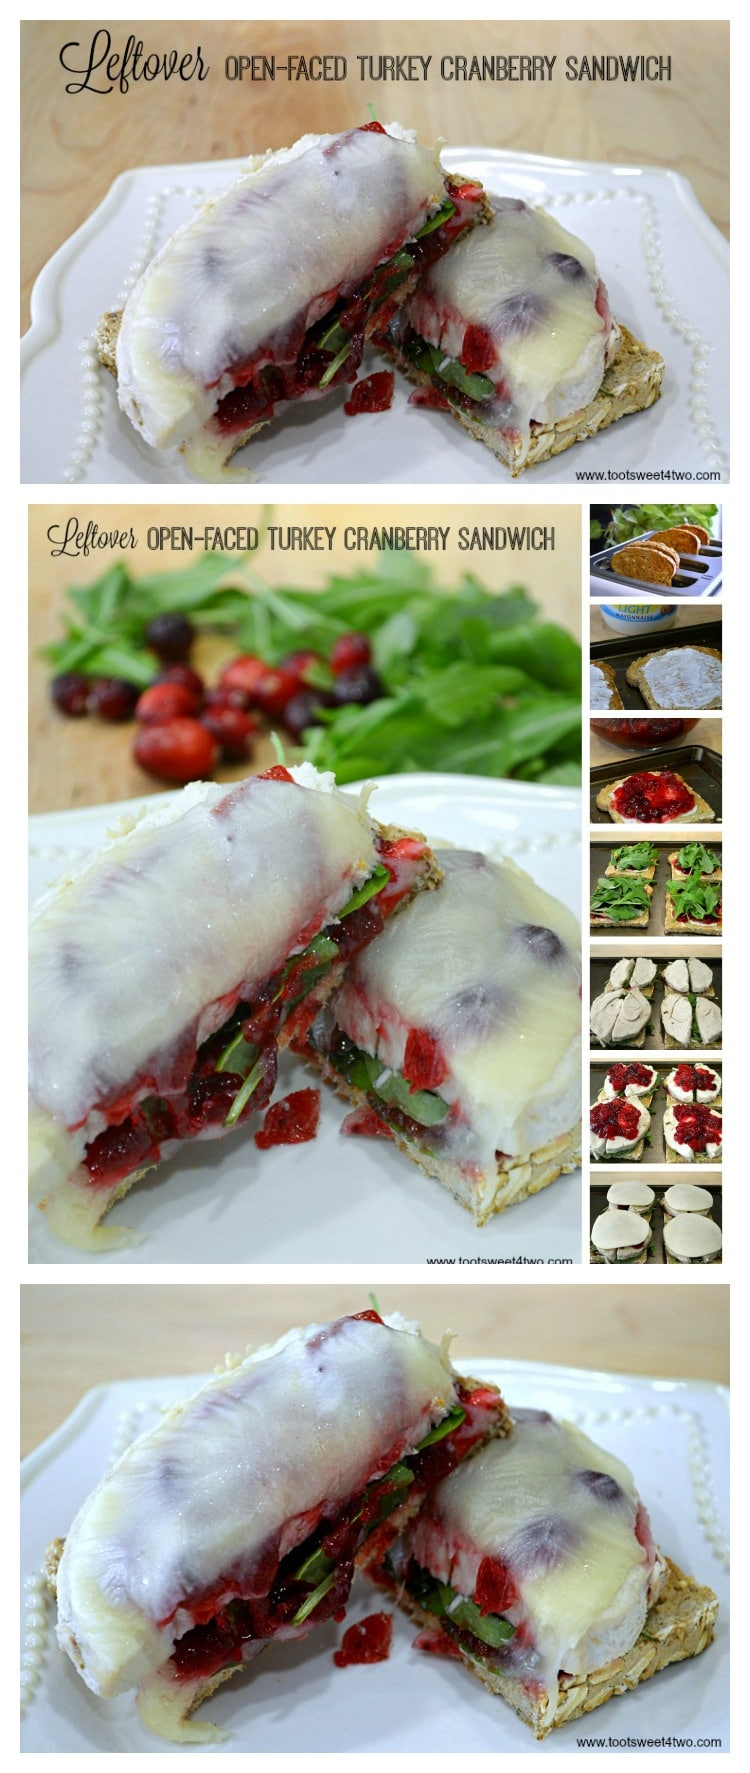 Leftover Open-faced Turkey Cranberry Sandwich - another delicious turkey leftover idea!